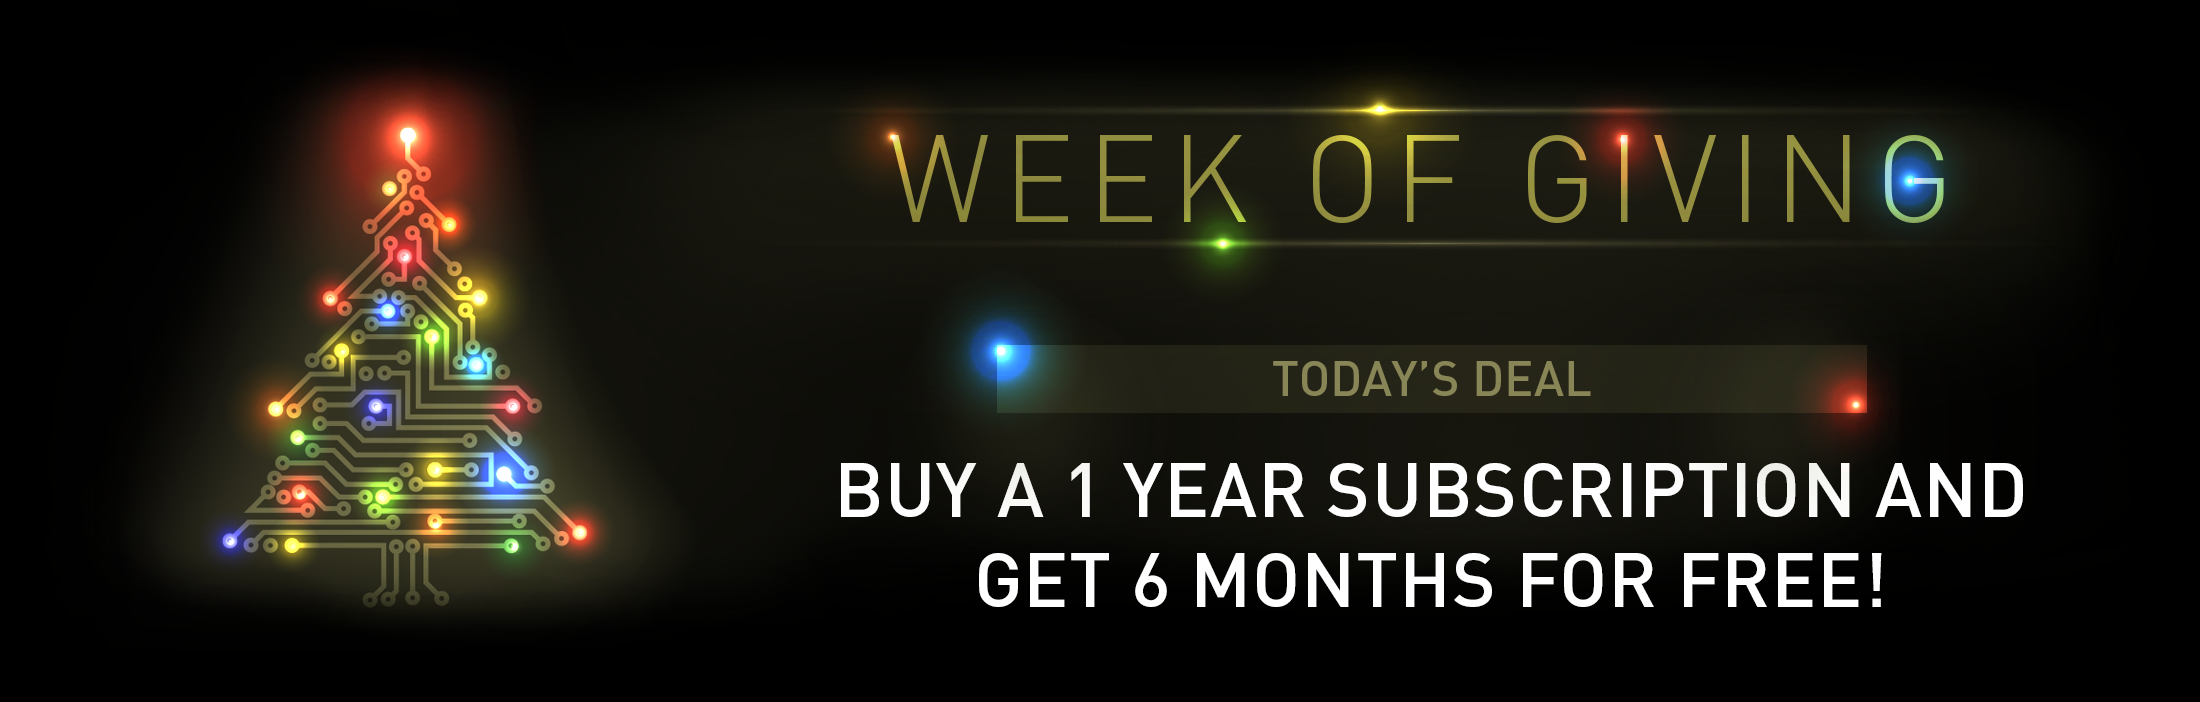 Buy a 1 year subscription and get 6 months for free